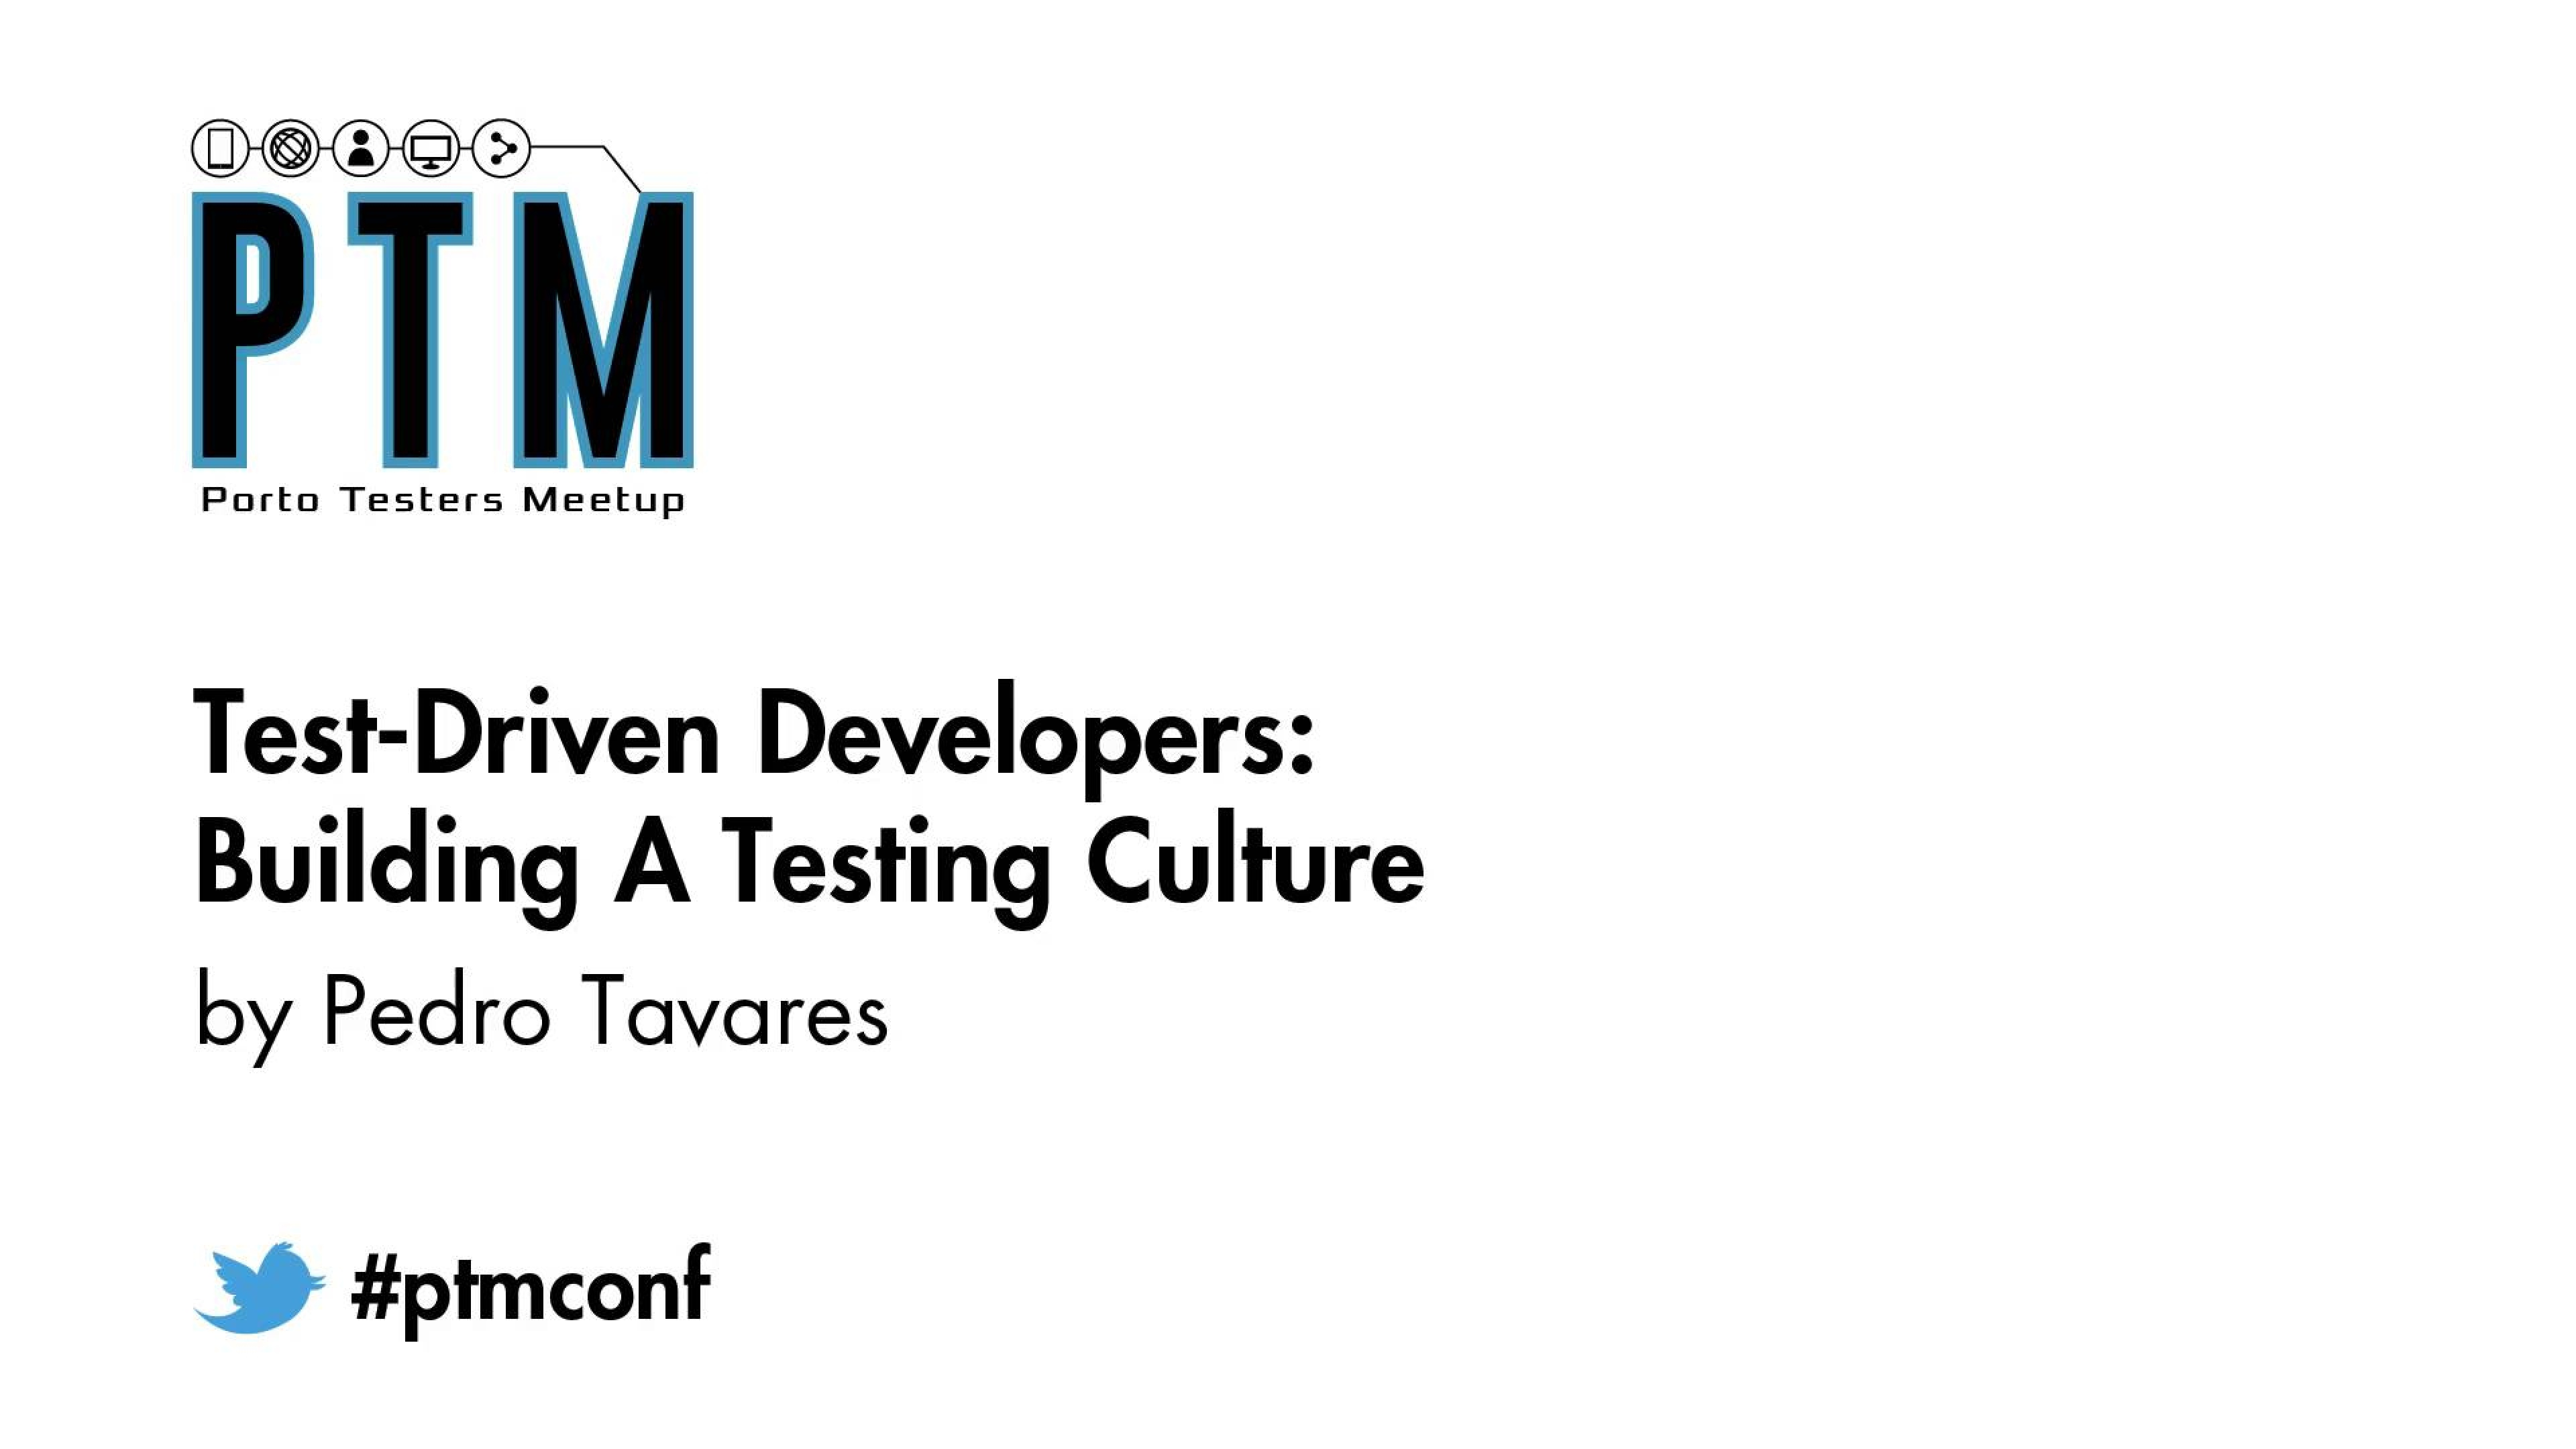 Test-Driven Developers: Building a Testing Culture - Pedro Tavares